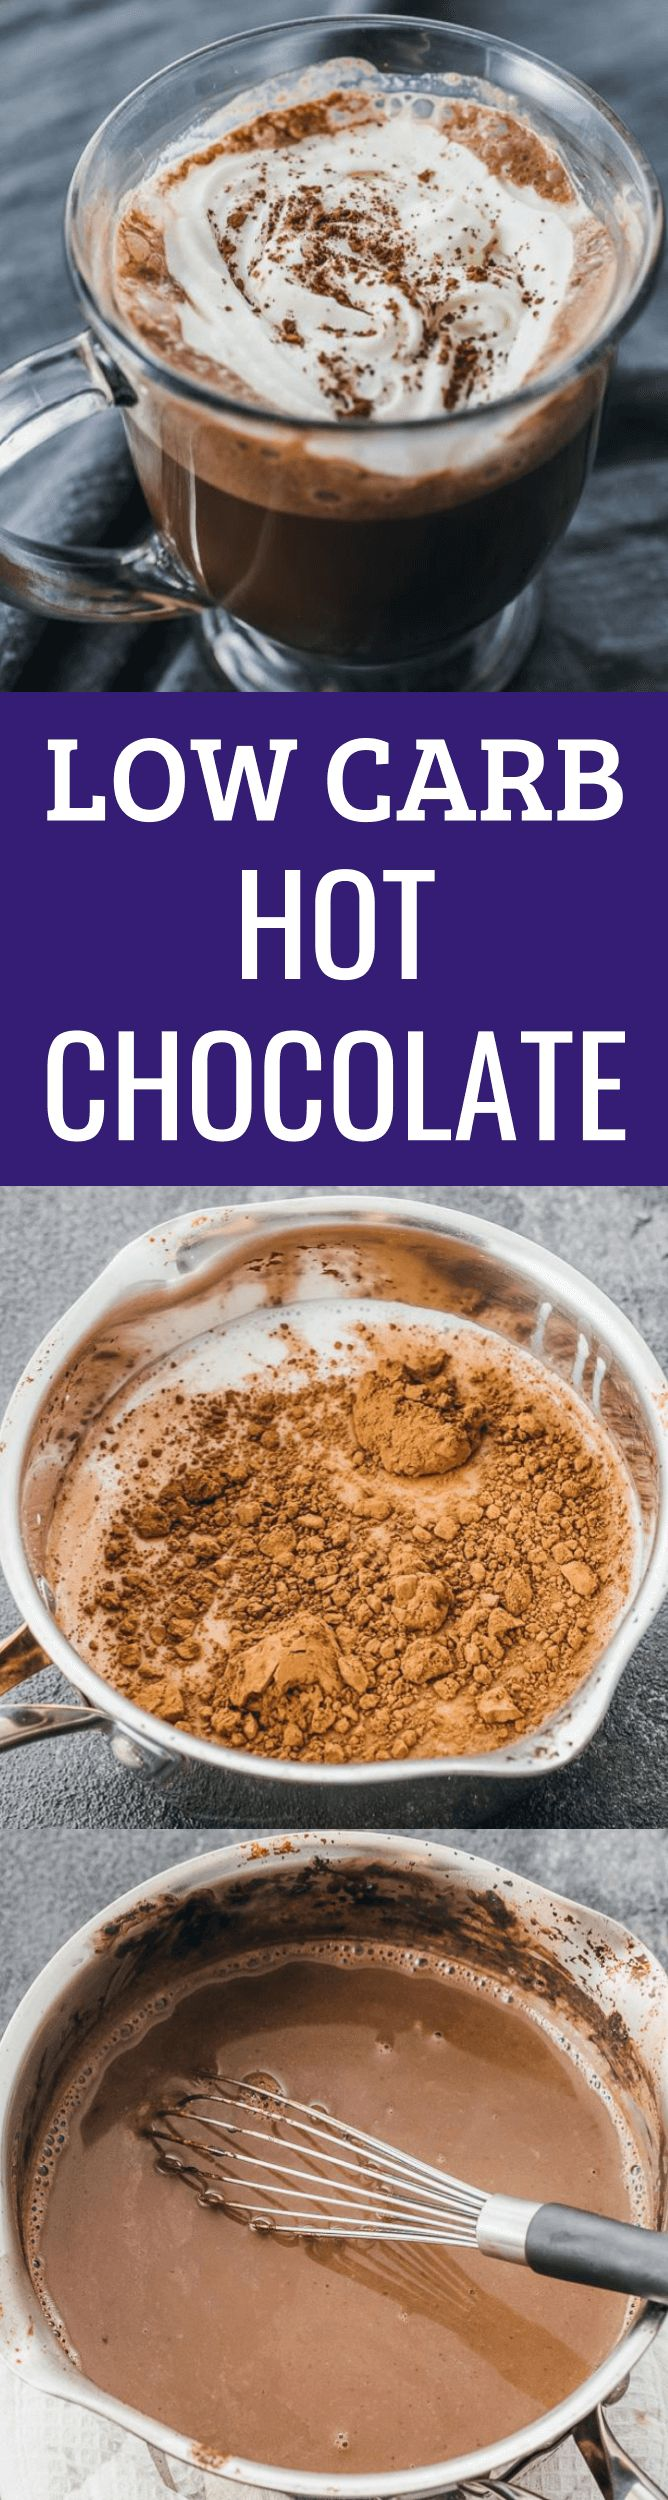 This low carb hot chocolate is the perfect treat for cold mornings, and ideal for a keto, clean eating, Atkins, or healthy diet. It's made using almond milk and heavy cream, with unsweetened cocoa, cinnamon, and a sugar free sweetener instead of honey/maple syrup. You can also sub with stevia. You can top this drink with whipped cream, and it's so simple, fun, and easy to customize to your liking. It's also a great recipe to make with kids and friends during the holidays! #keto...